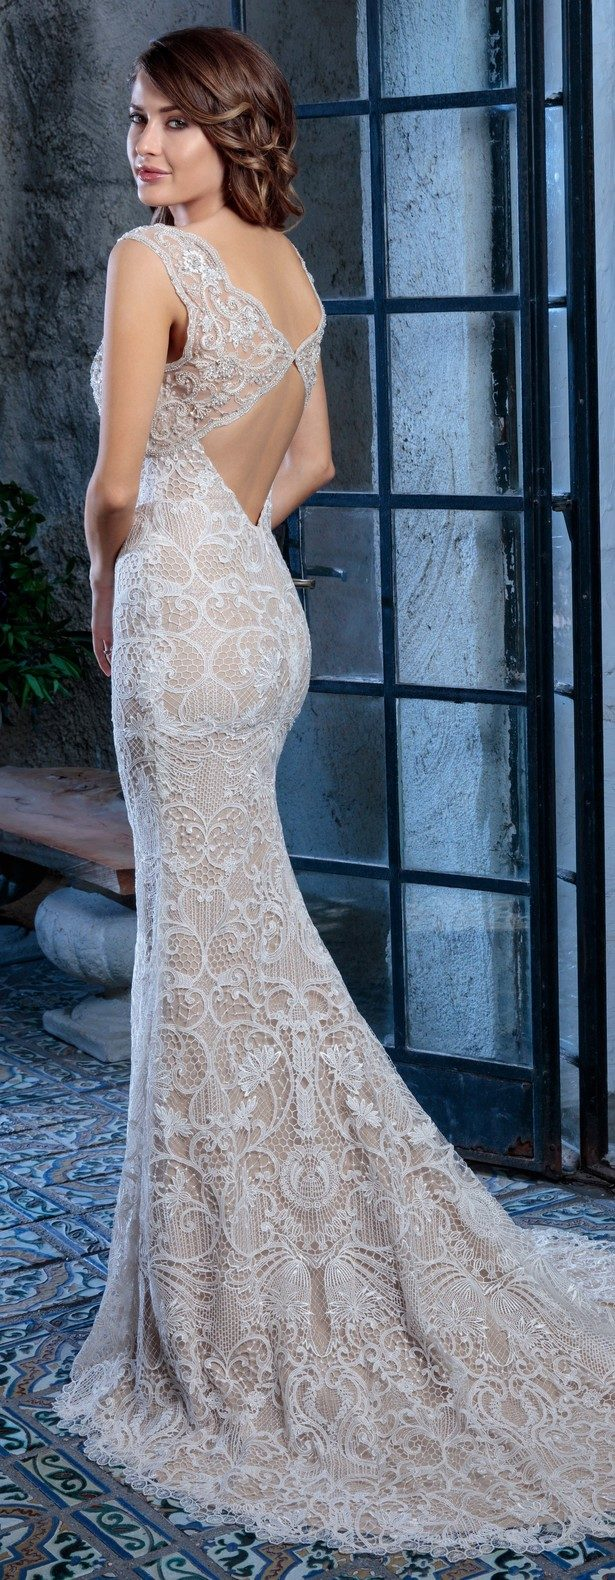 Wedding Dress - Amaré Couture from Casablanca Bridal